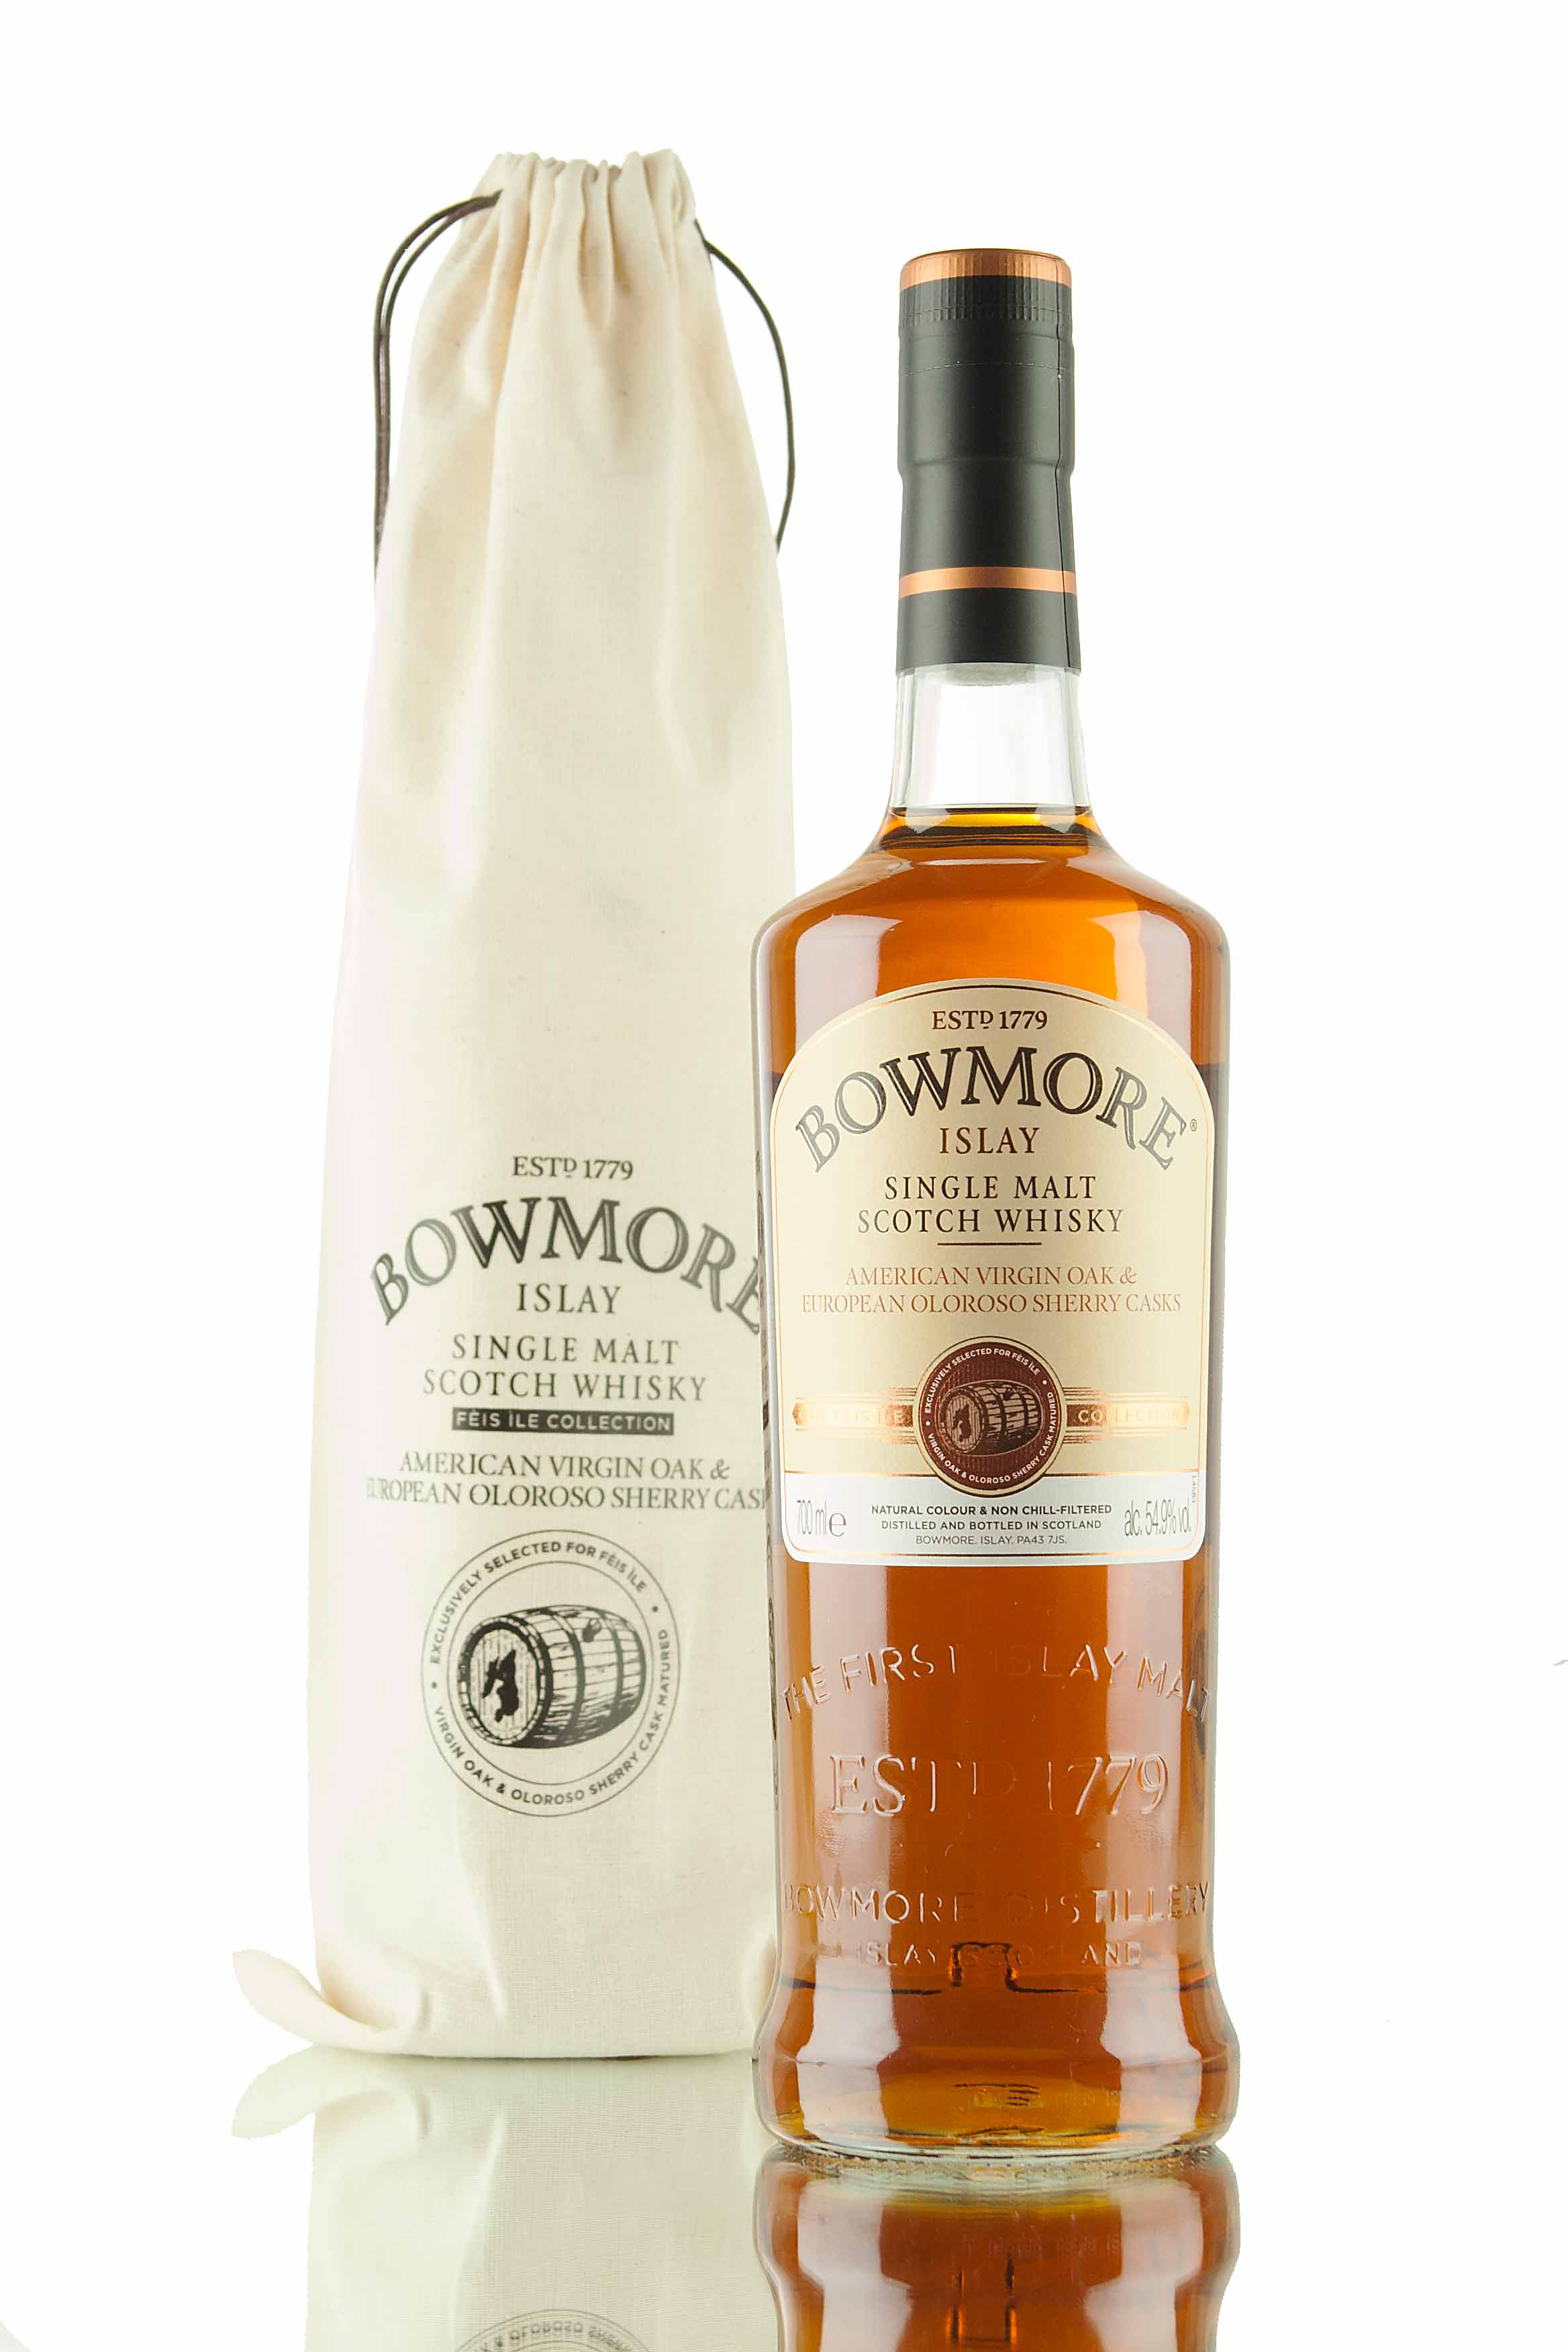 Bowmore Feis Ile 2016 / Virgin Oak & Oloroso Sherry Casks